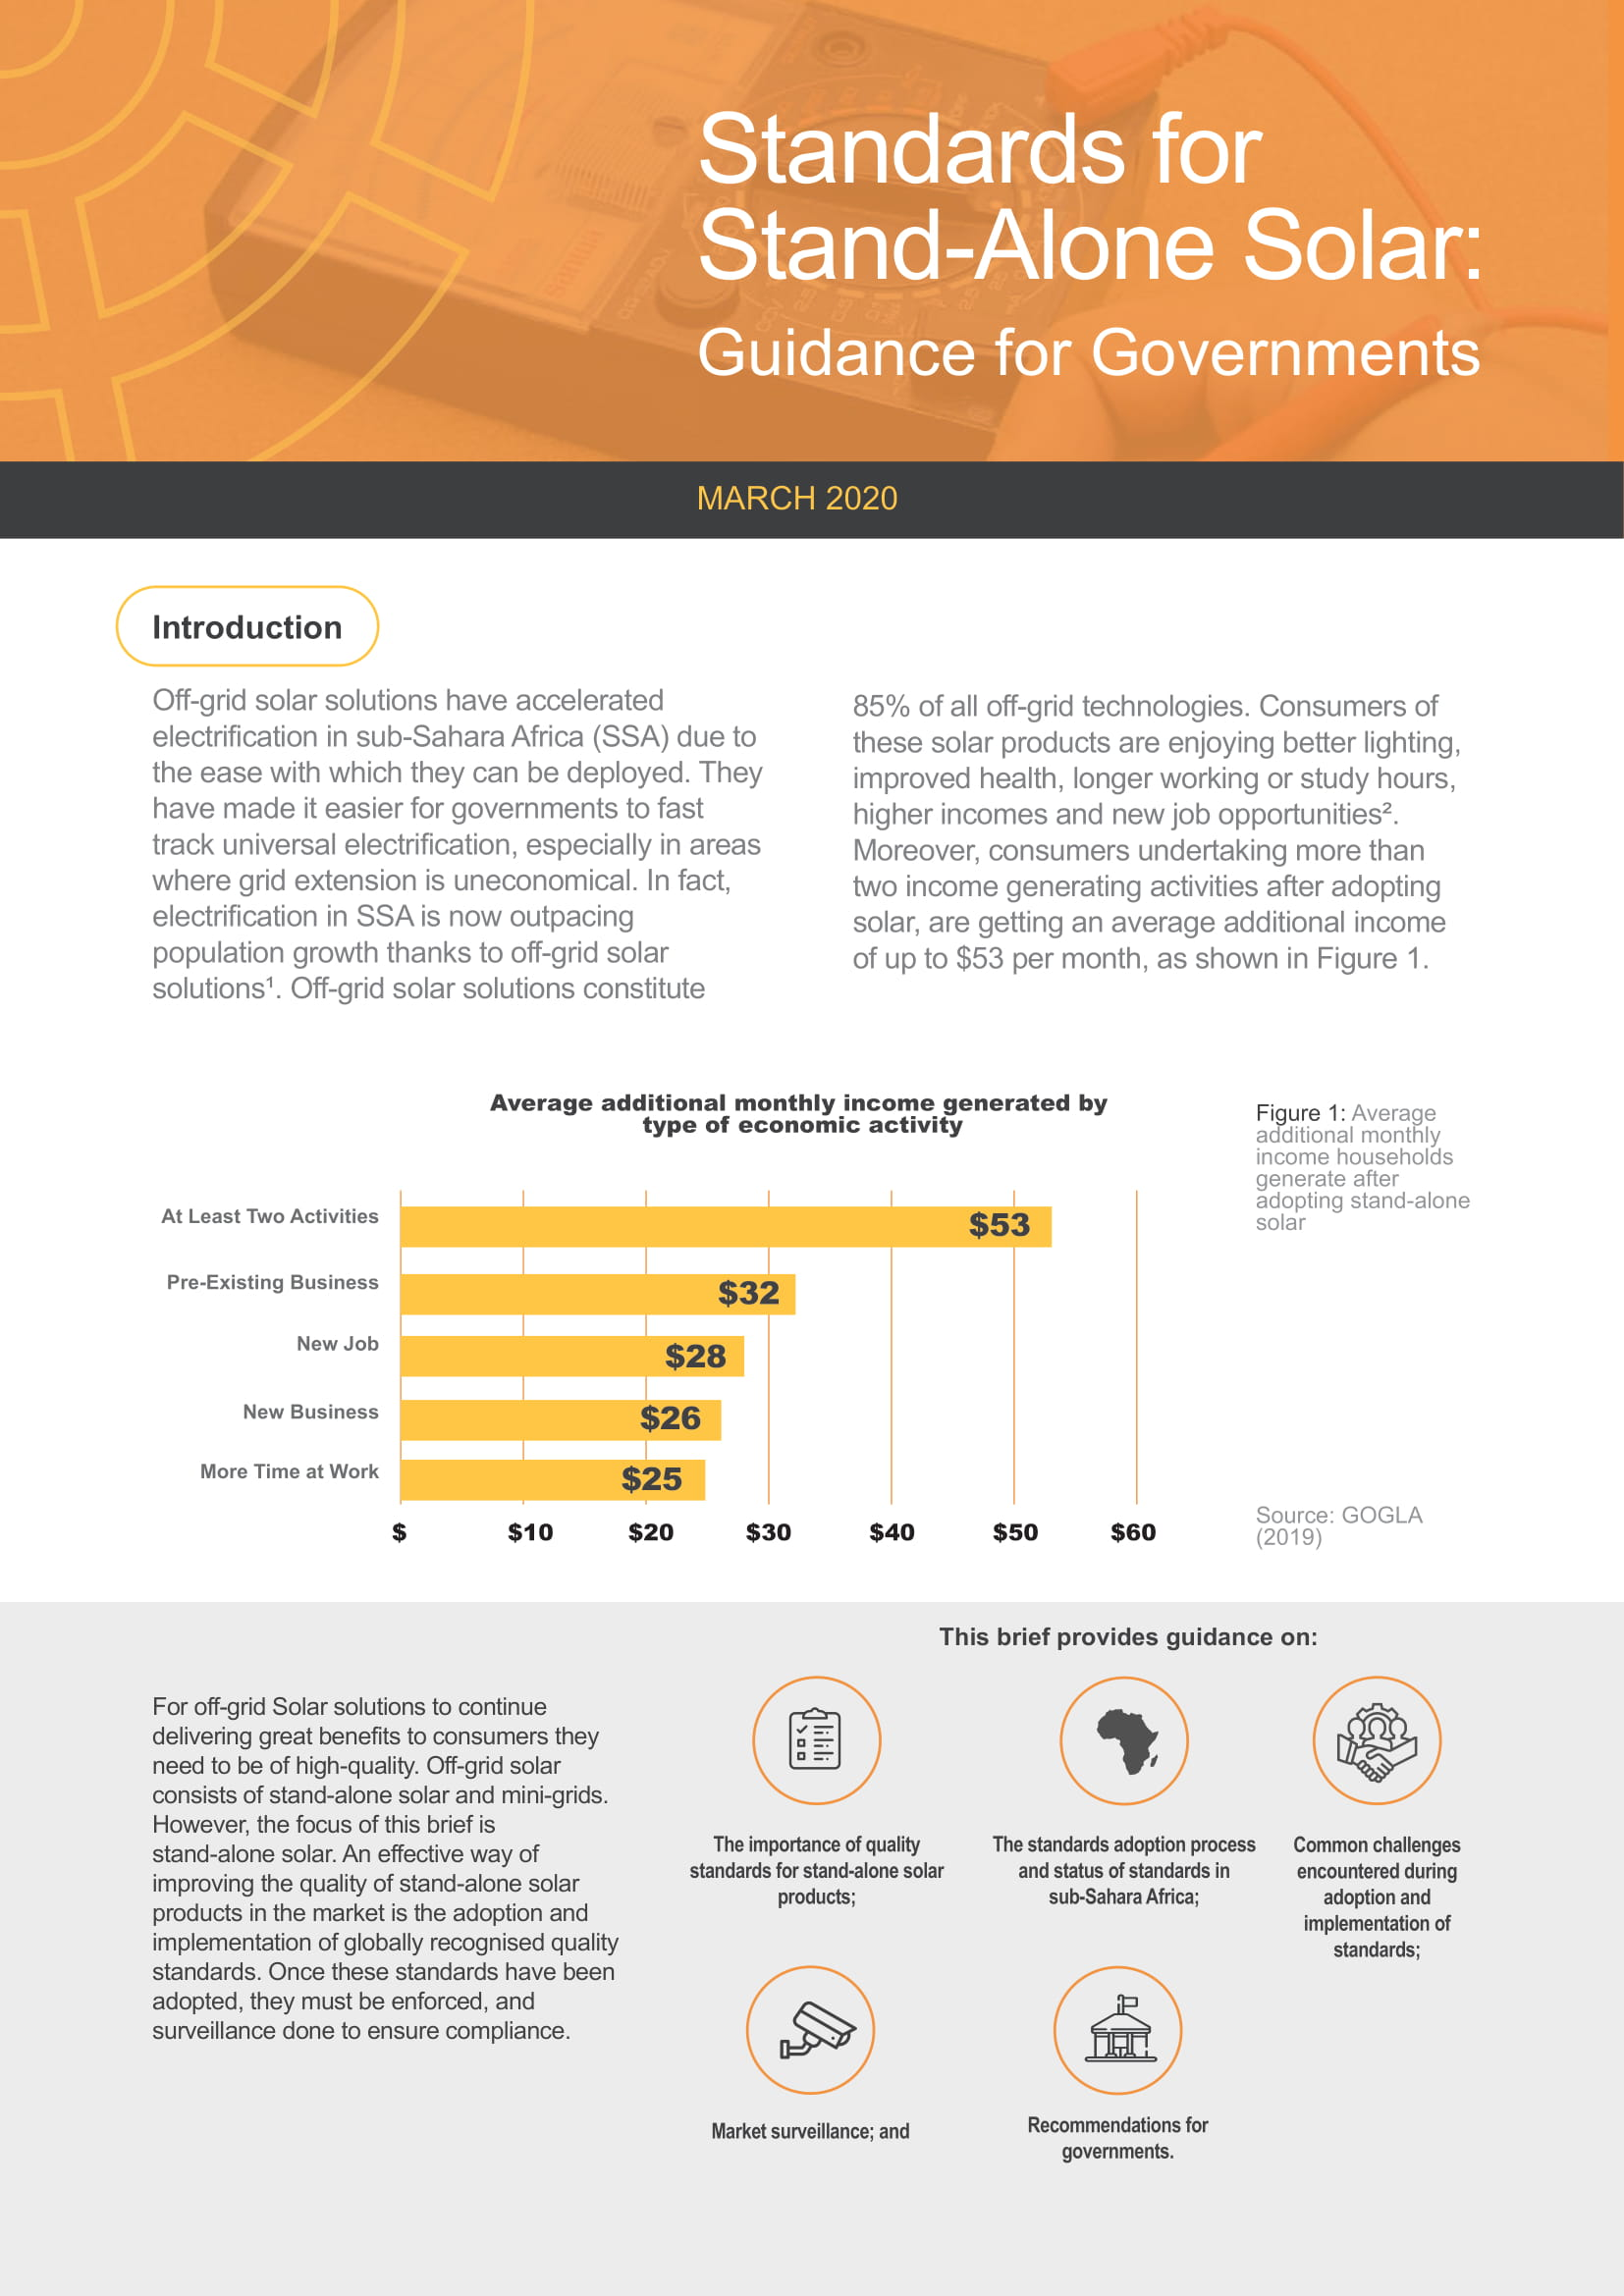 Standards for Stand-Alone Solar: Guidance for Governments